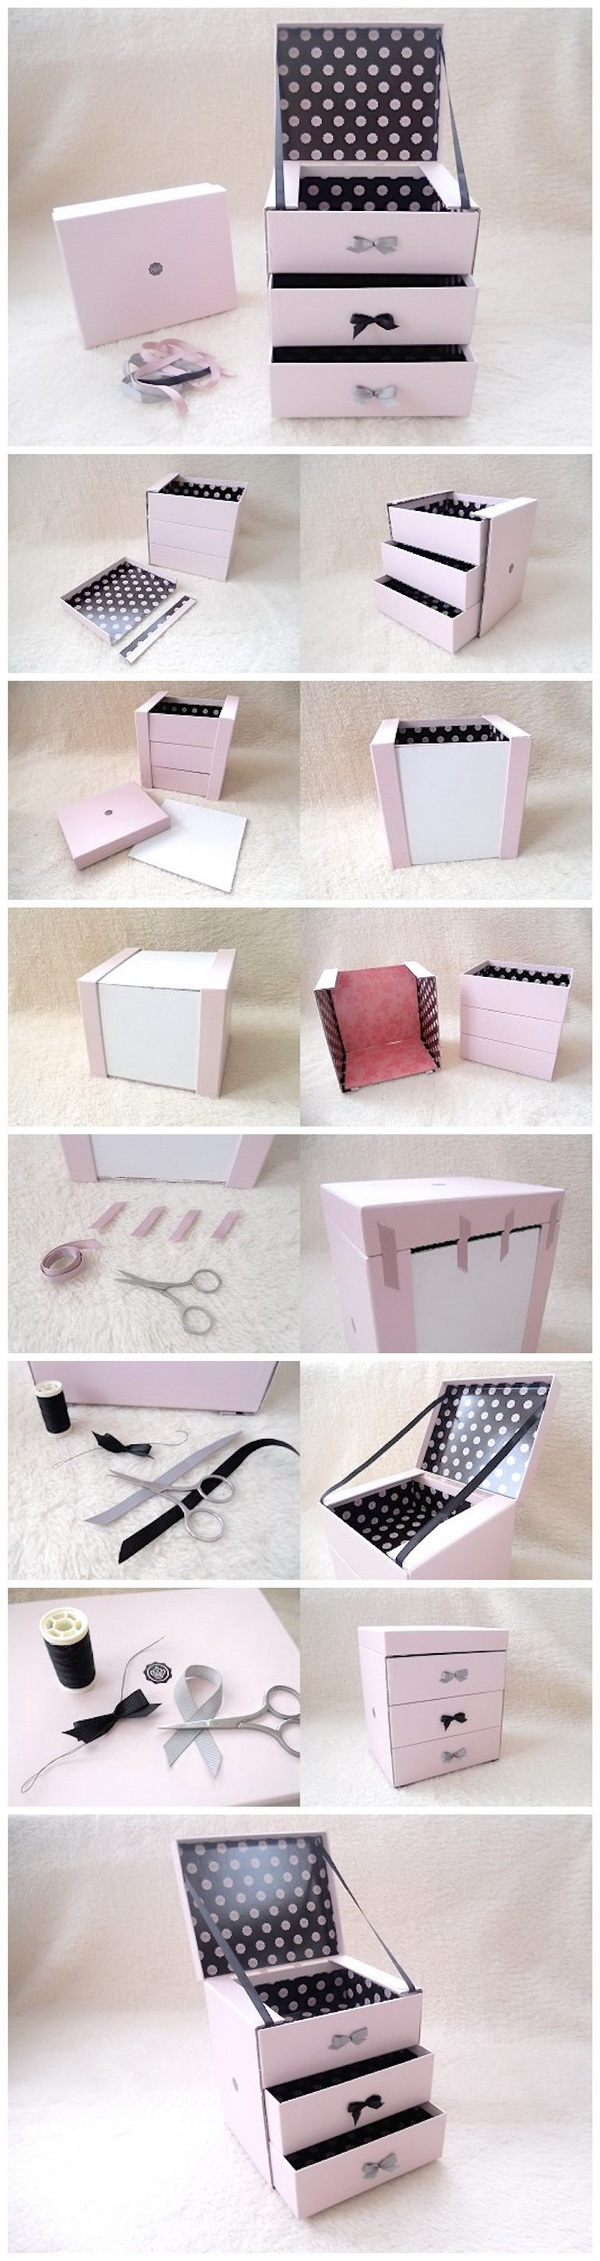 DIY Glossybox Jewellery Drawers. Never throw away the shopping boxes next time! You can turn them into a cute storage like this jewelry drawer with our tutorial and instructions. It is perfect in a girl's room.